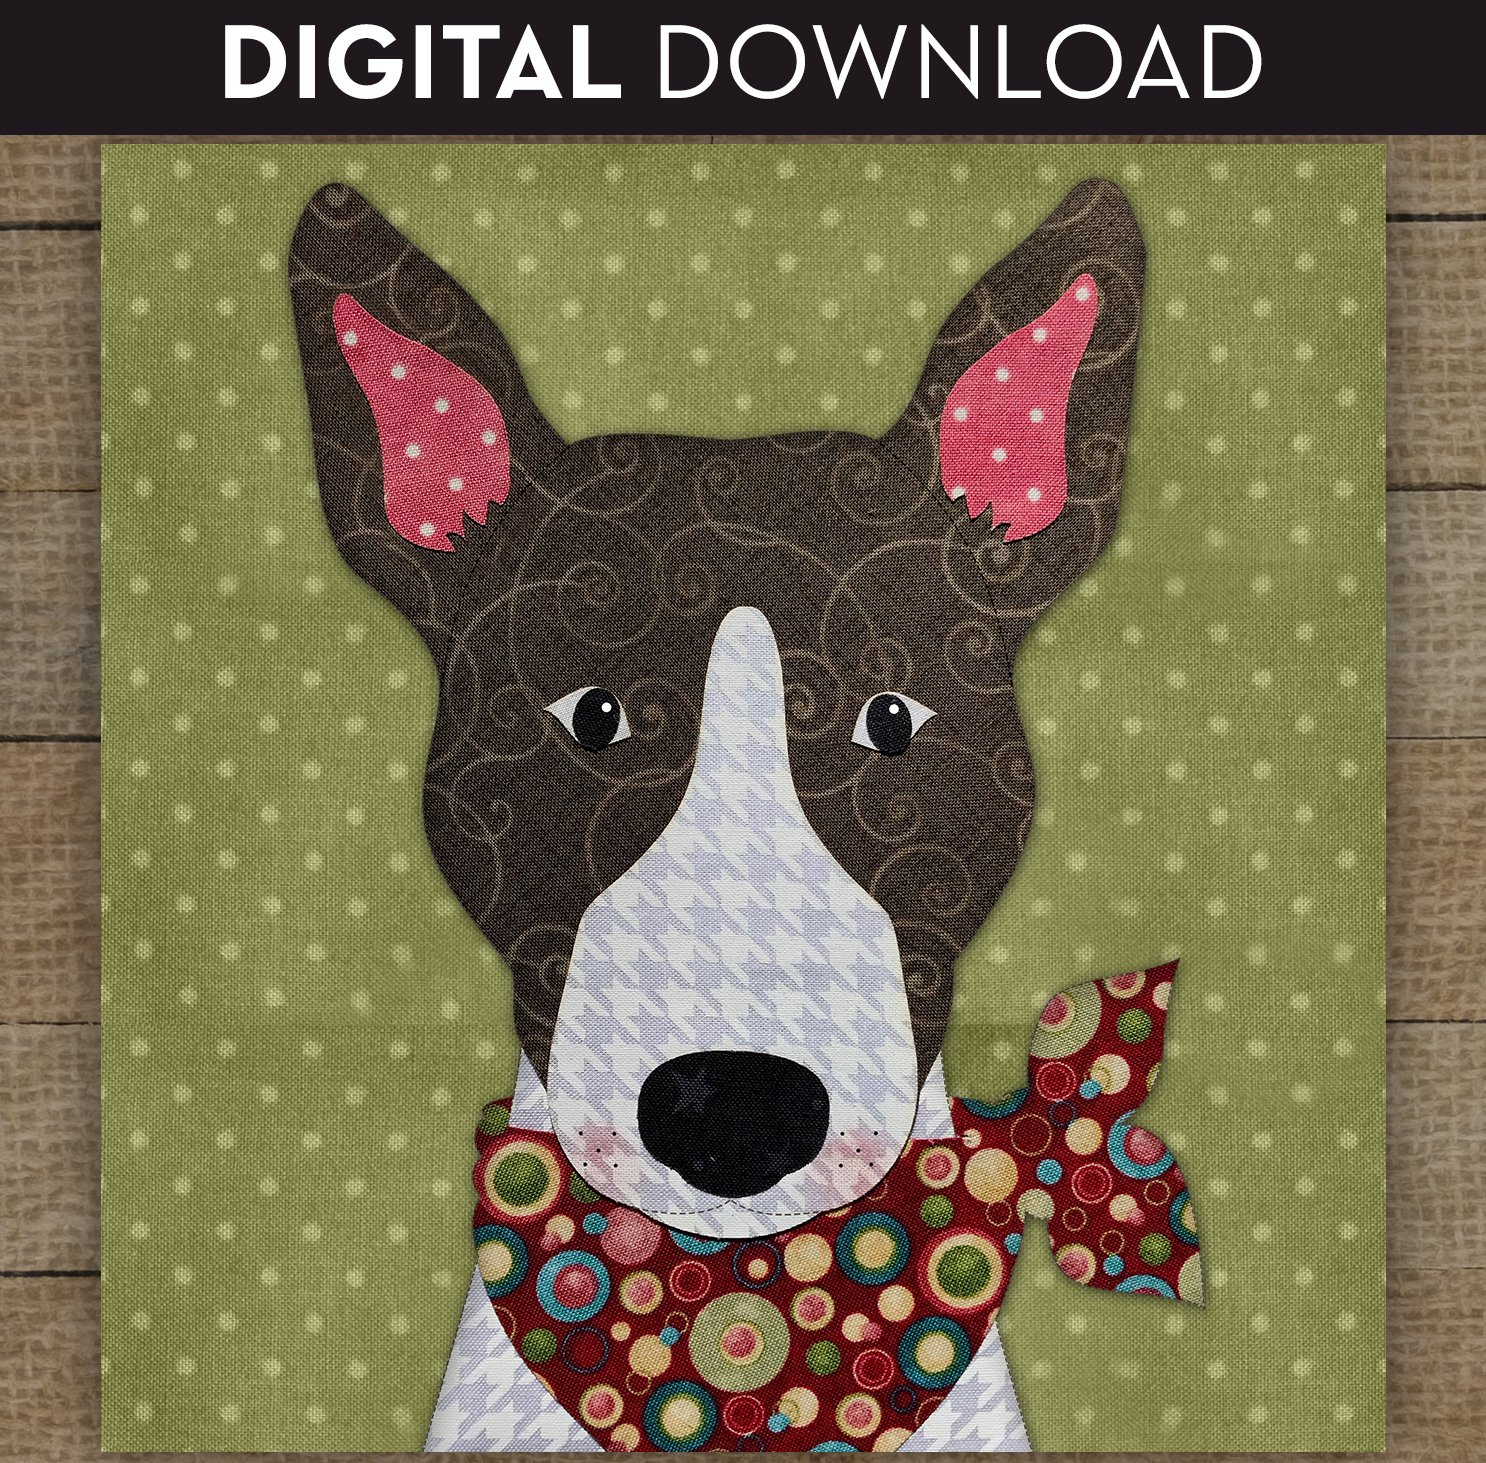 Bull Terrier - Download